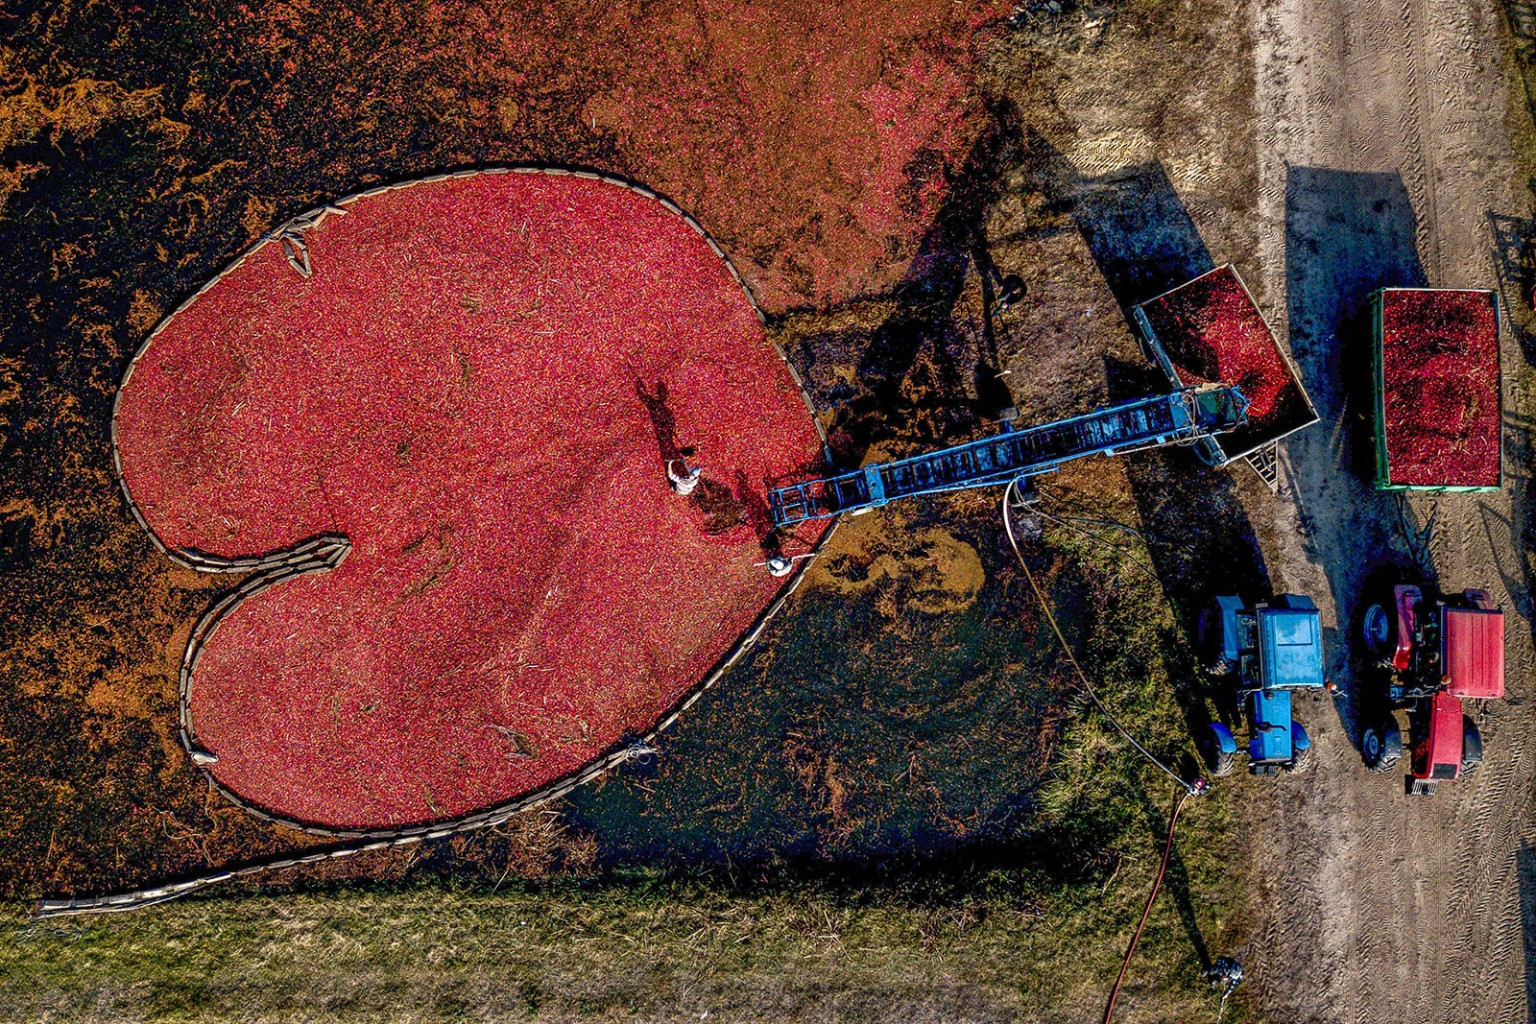 Workers harvest cranberries at the Polesskie Zhuraviny state farm in the village of Selishche, south of Minsk, Belarus, on Oct. 19. MAXIM MALINOVSKY/AFP/Getty Images